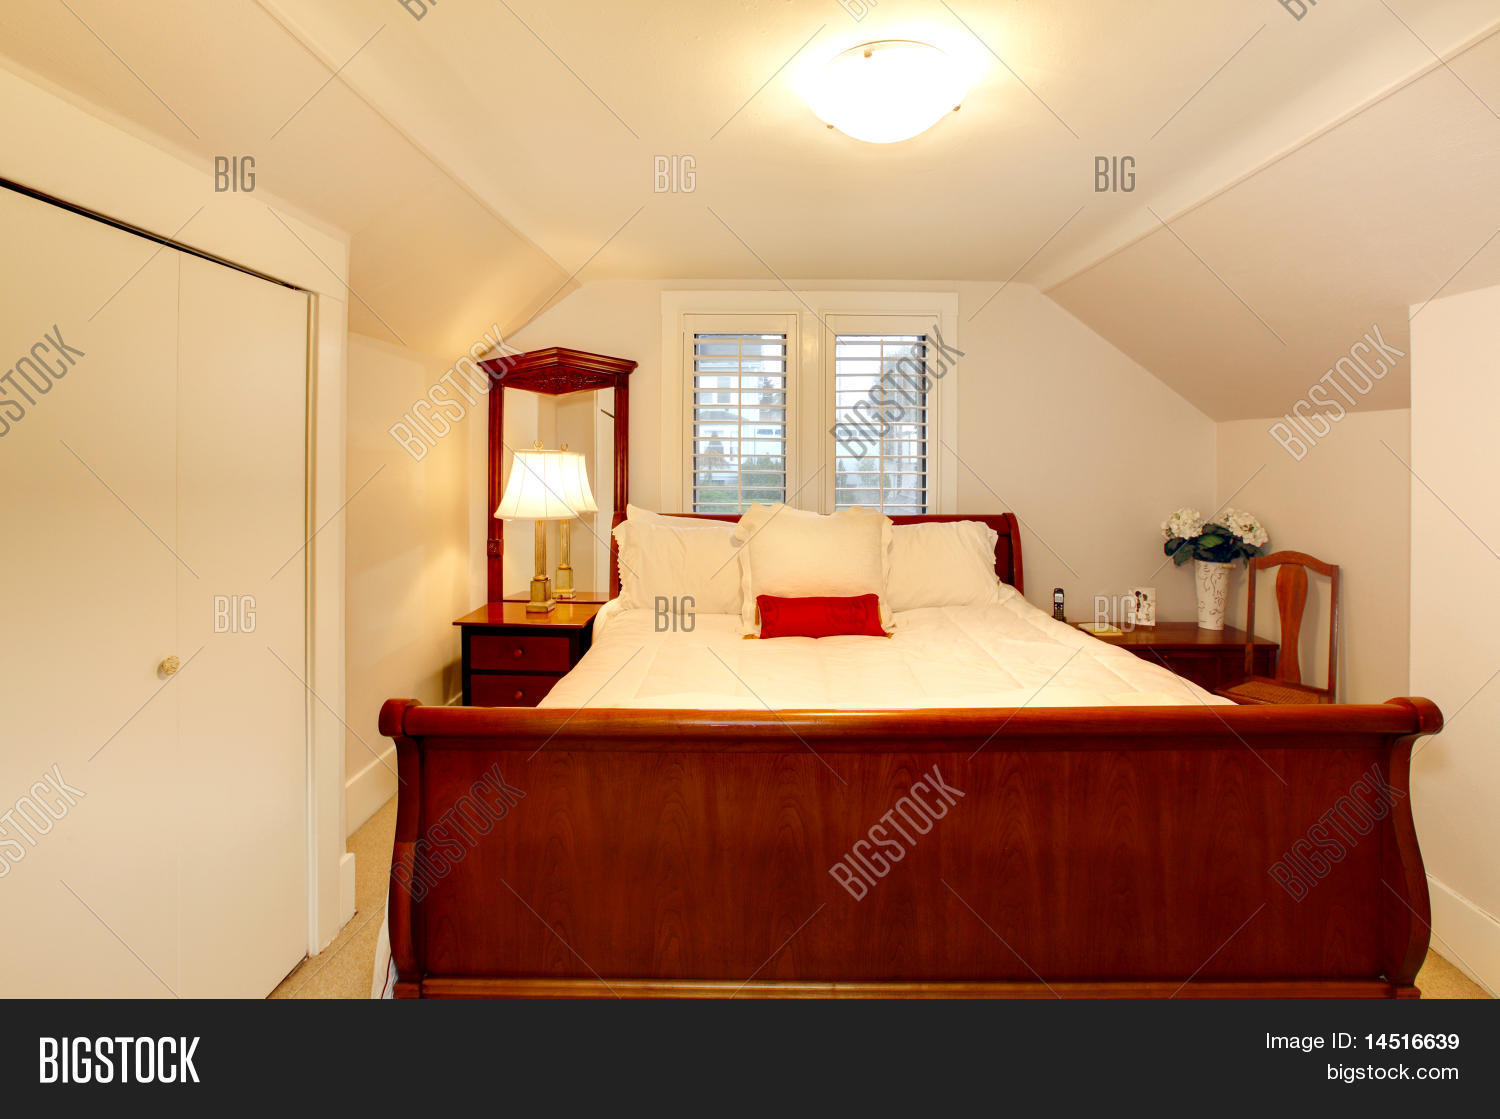 Small Bedroom Low Image & Photo (Free Trial) | Bigstock